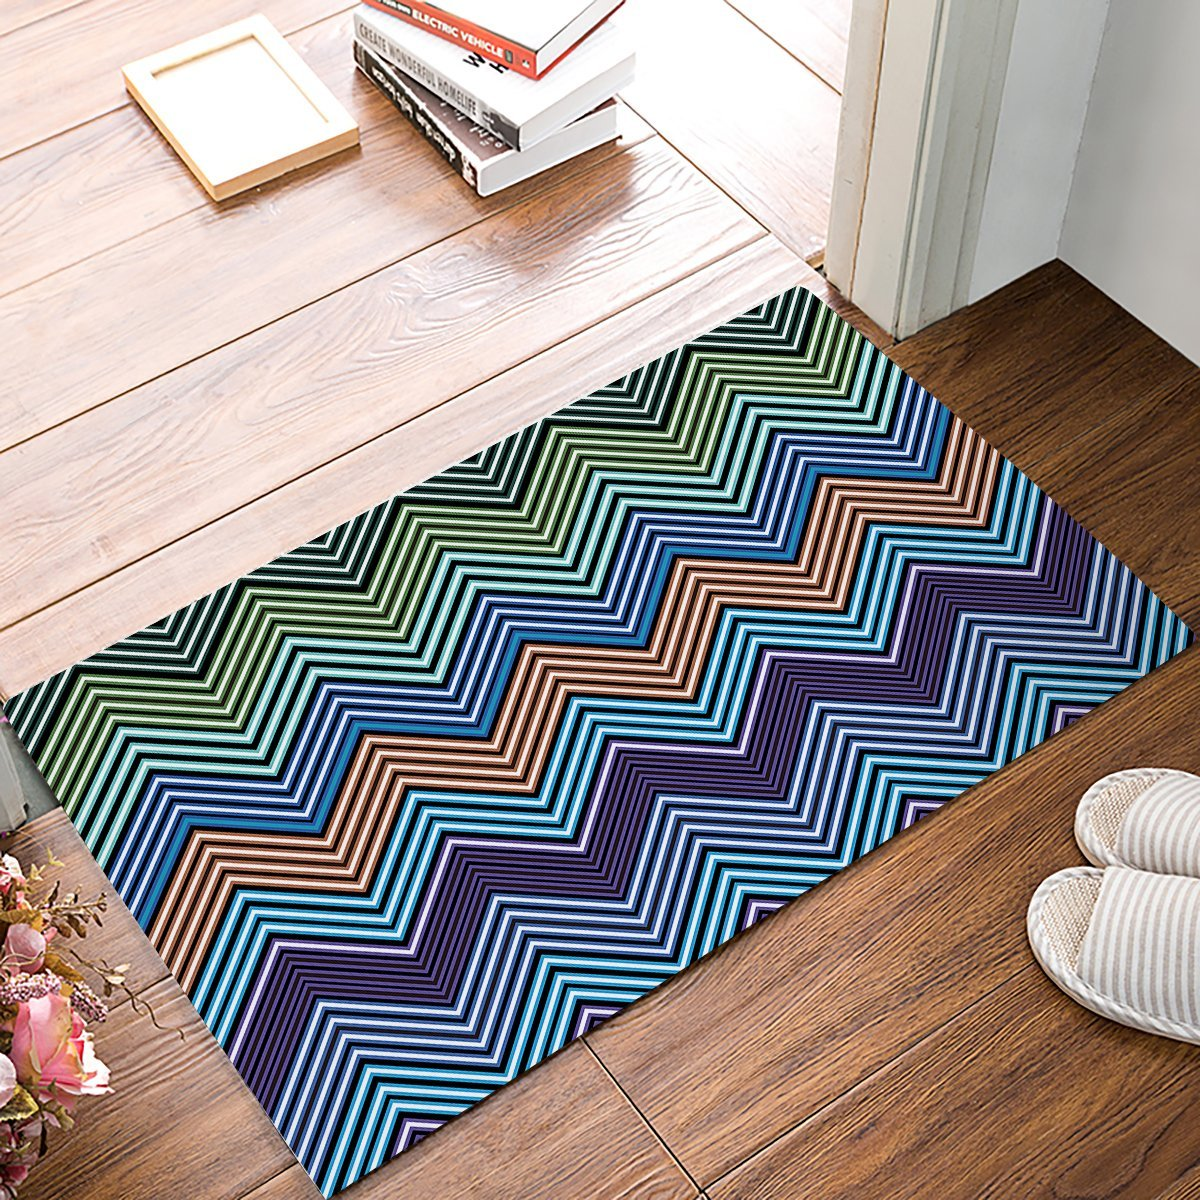 Colorful Repeat Arrangement of Stripes Pattern Bathroom Doormat Carpet Indoor Mat Anti Skid Shag Shaggy Bath Shower Mats